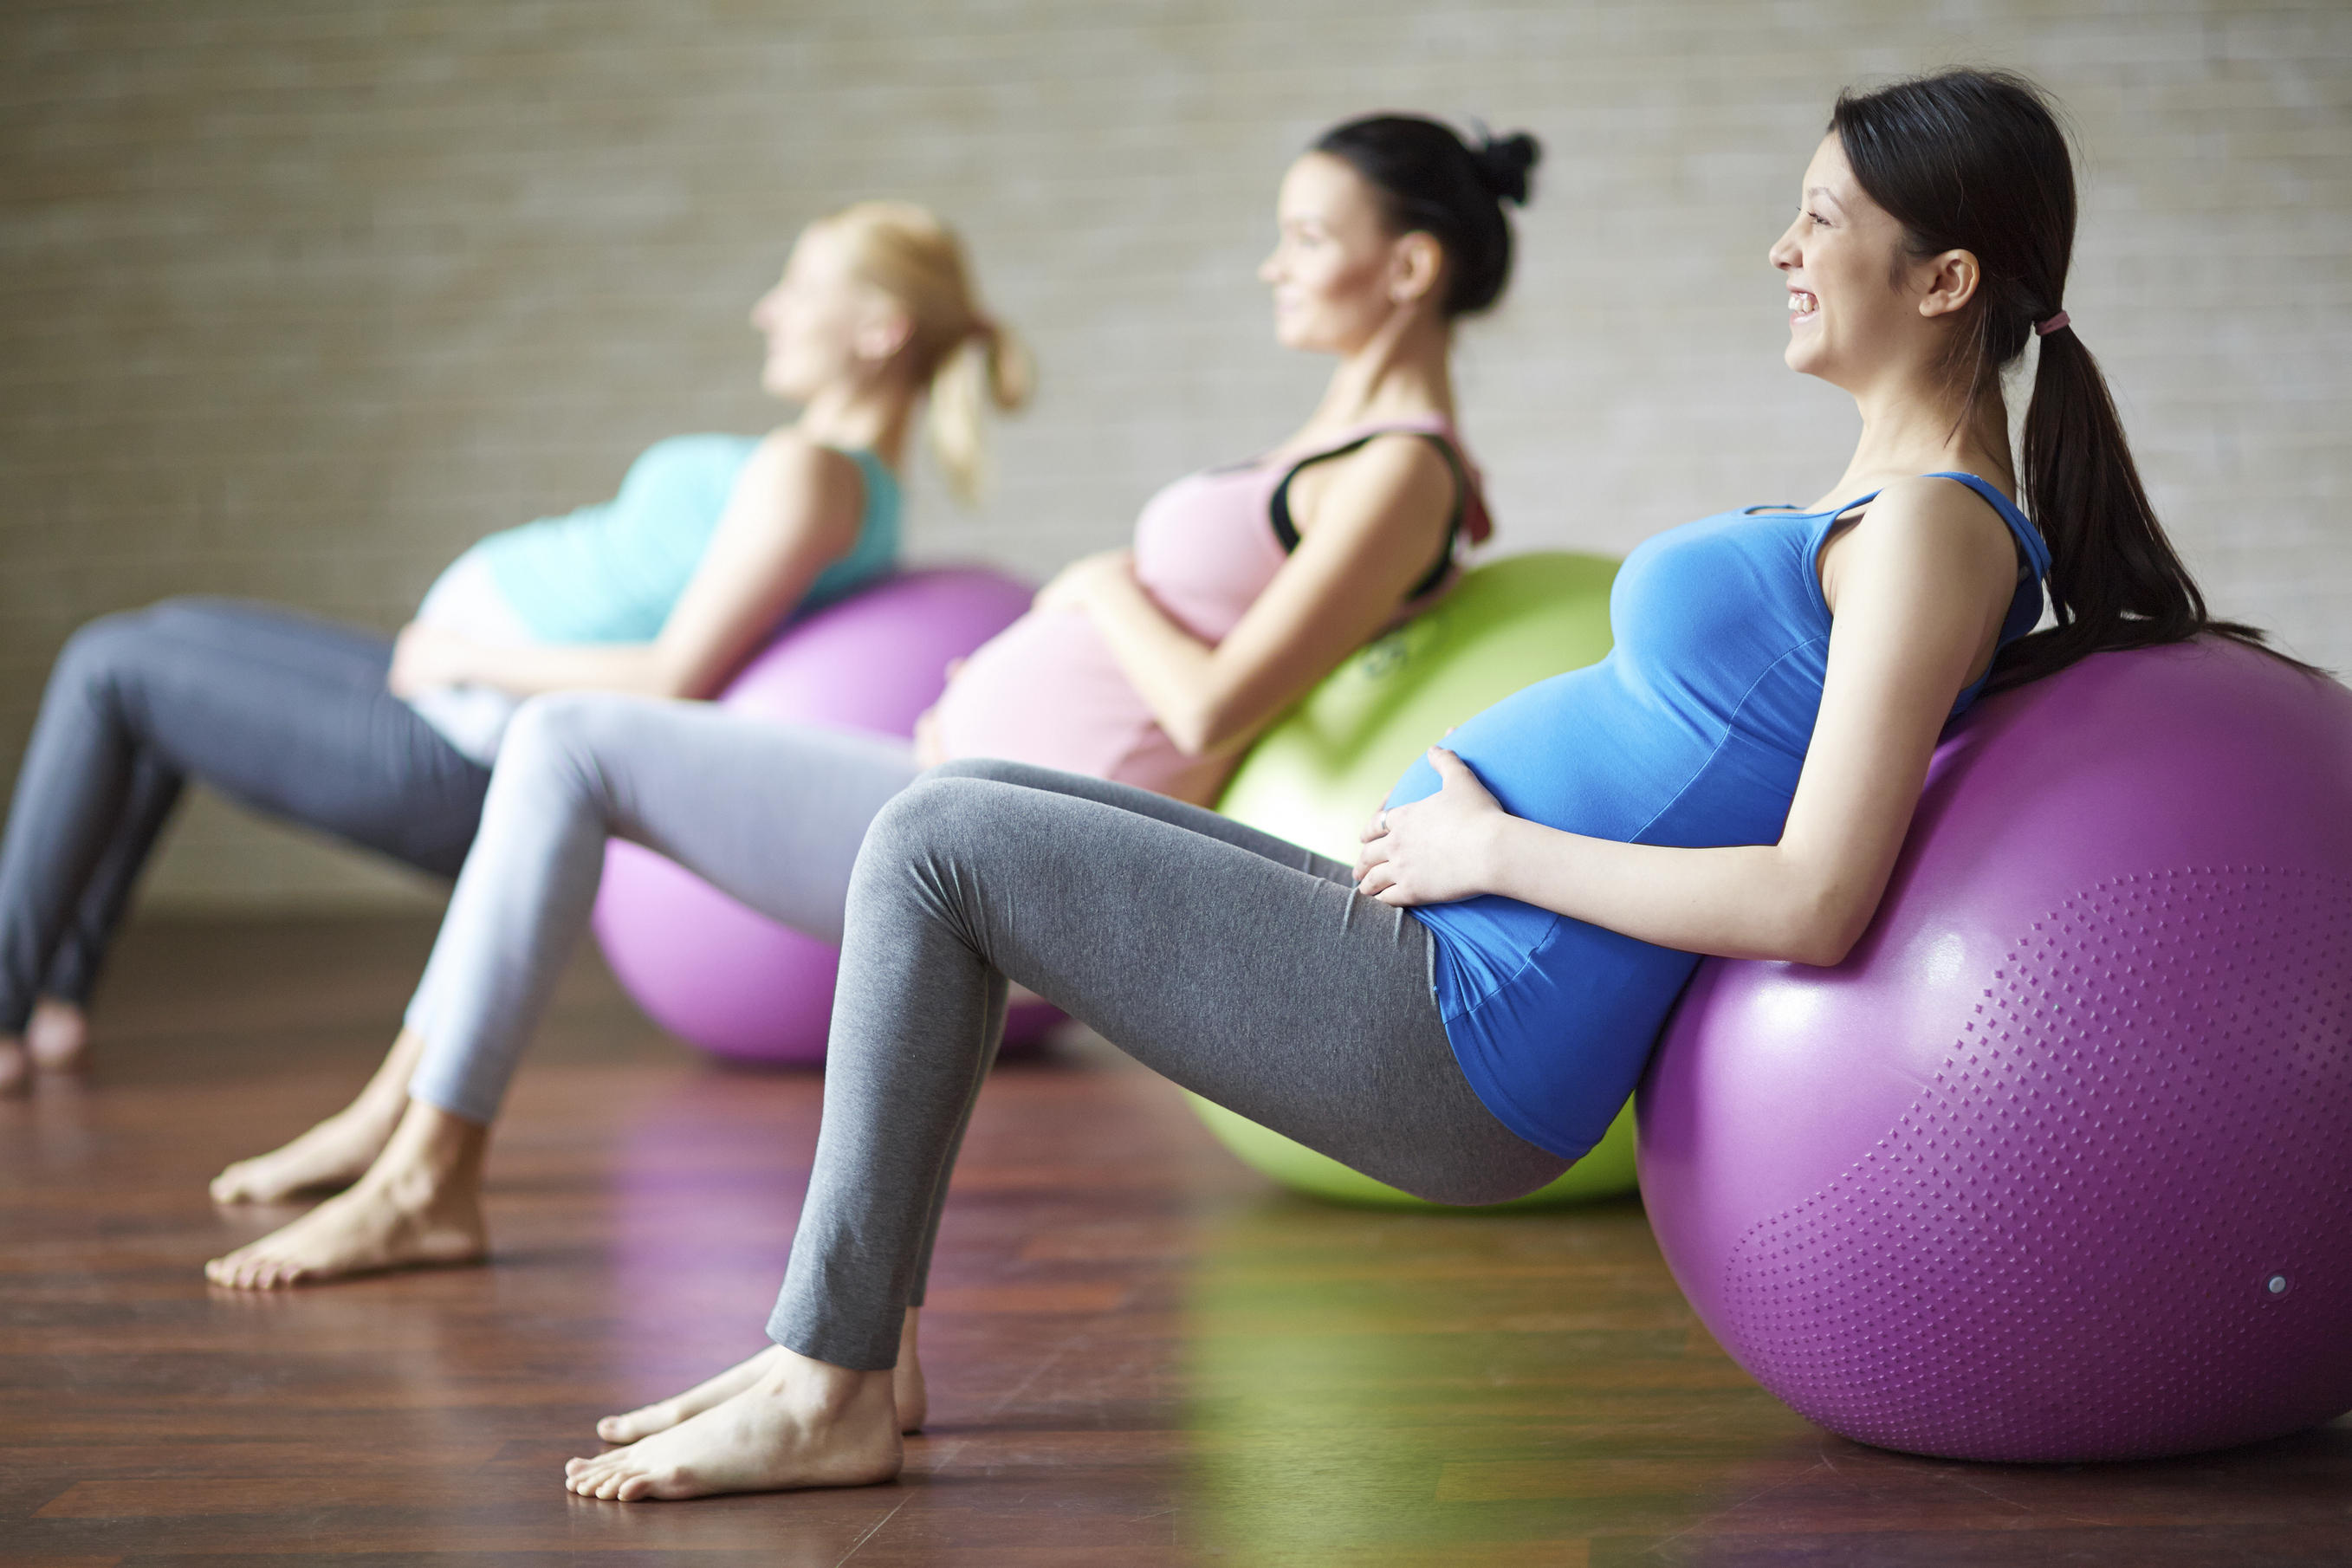 How safe is intense exercise during pregnancy?